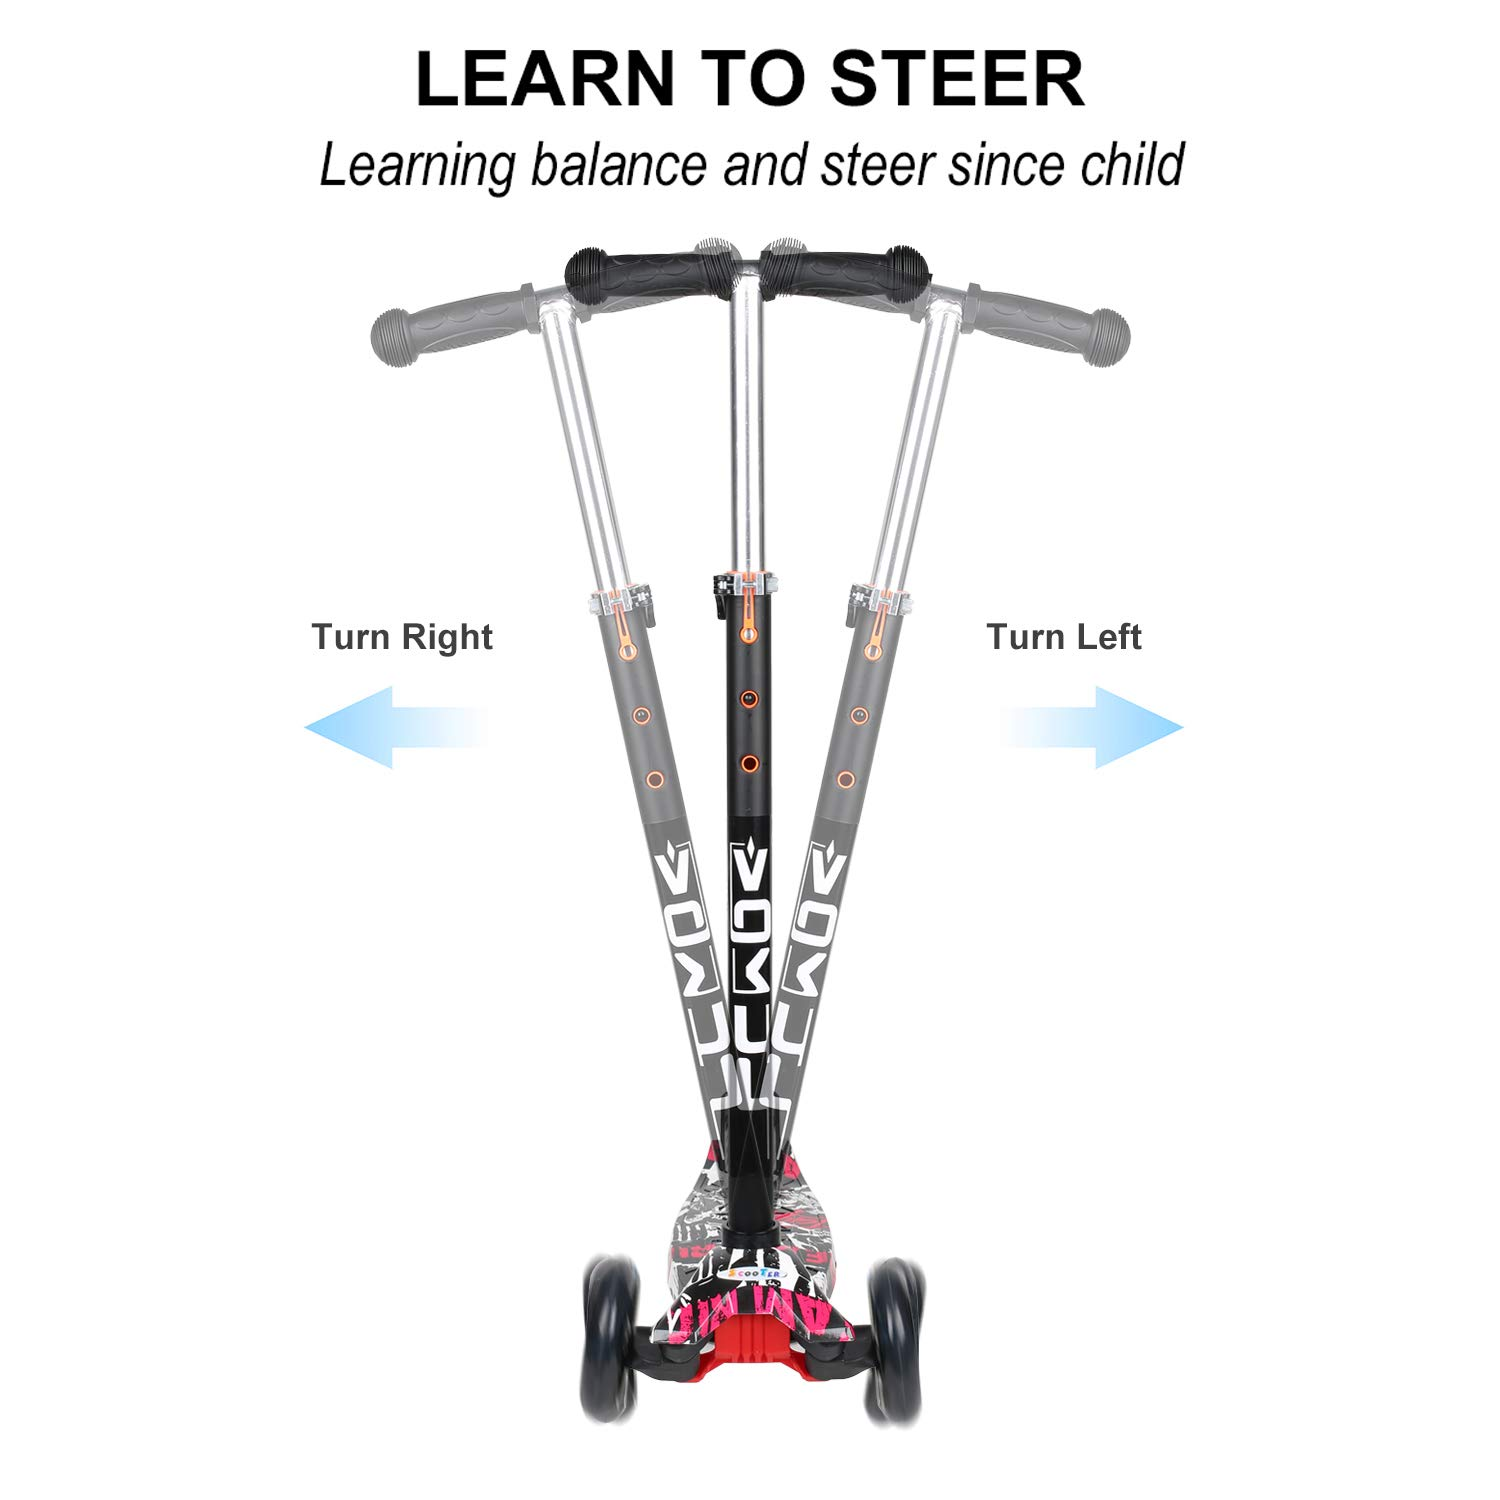 VOKUL Mini Kick Scooter for Kids Aged 3 and Above, Kick Glider 3 Wheel LED Light with Adjustable Height for Childhood Fun – Excellent Stable Lean-to-Steer Mechanism